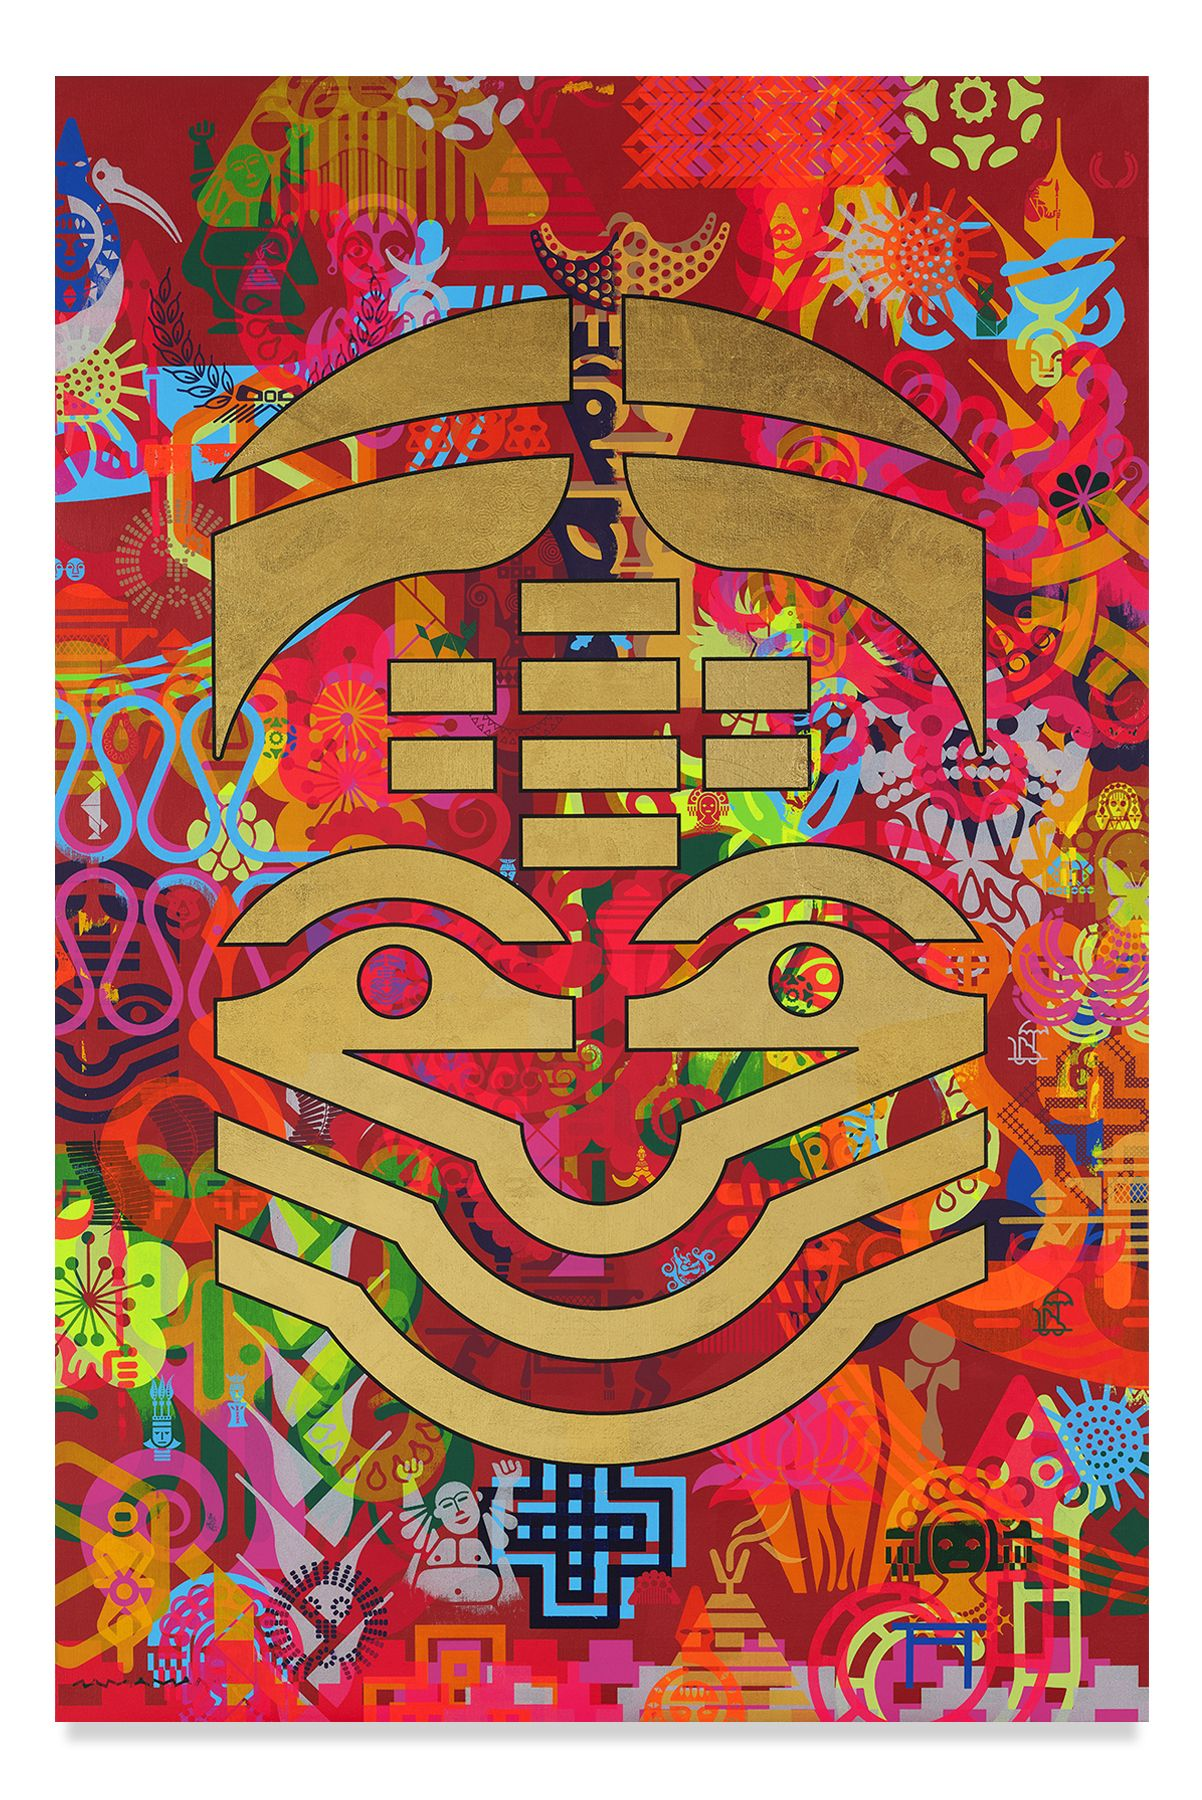 Taipei Dangdai 6, 2019,Acrylic and metal leaf on linen,60 x 40 inches,152.4 x 101.6 cm,MMG#31812